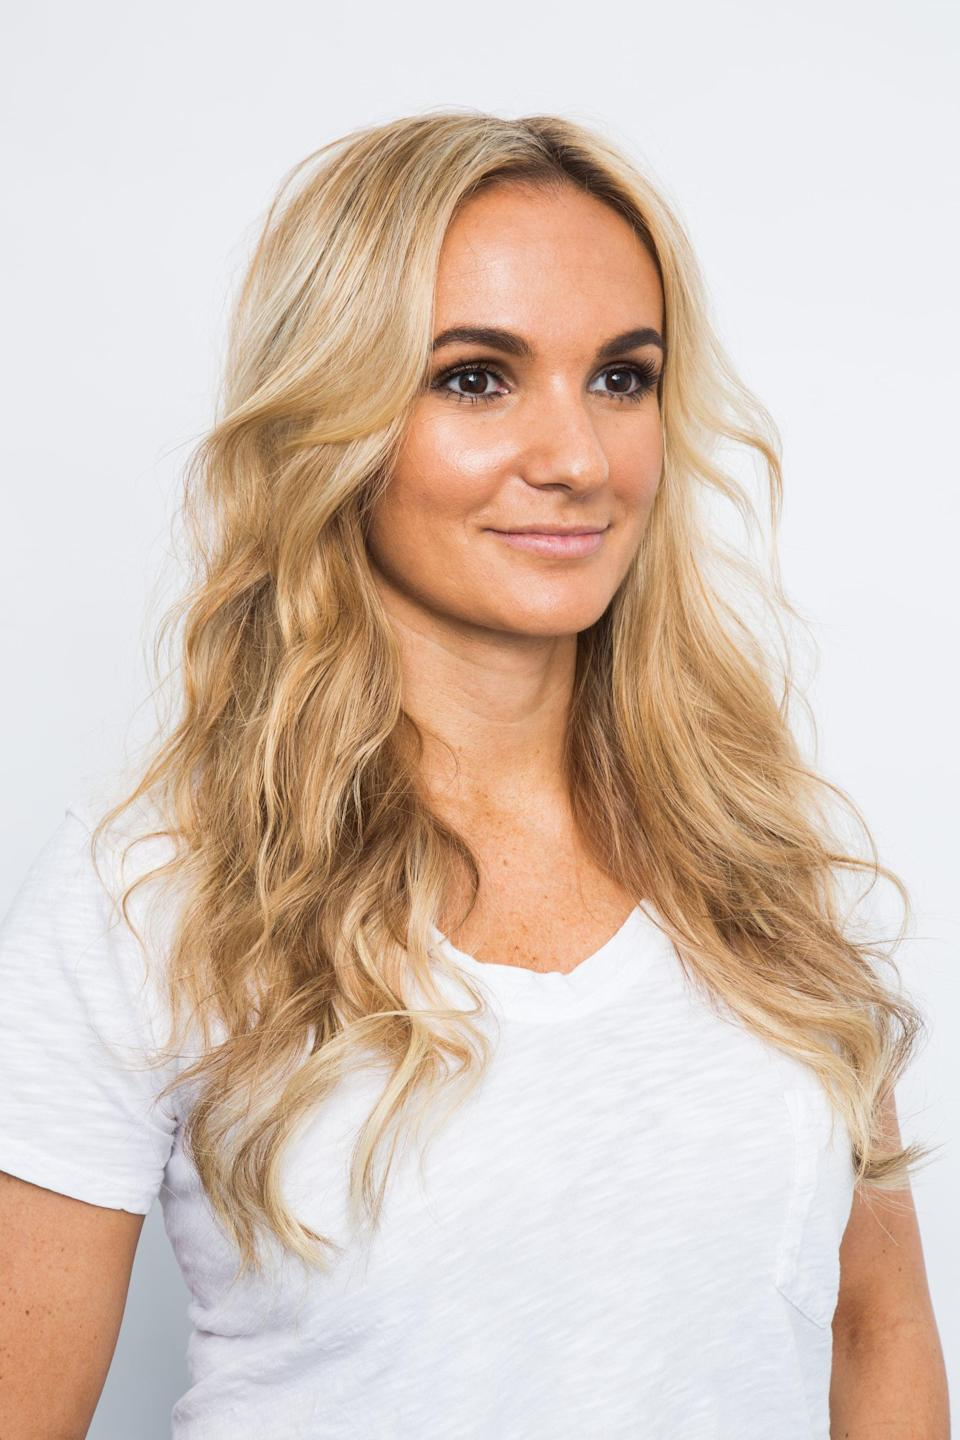 <p>The finished effect is perfectly undone waves with just enough volume. This technique also creates volume in limp, straight hair and you can use it to smooth unruly waves.</p>